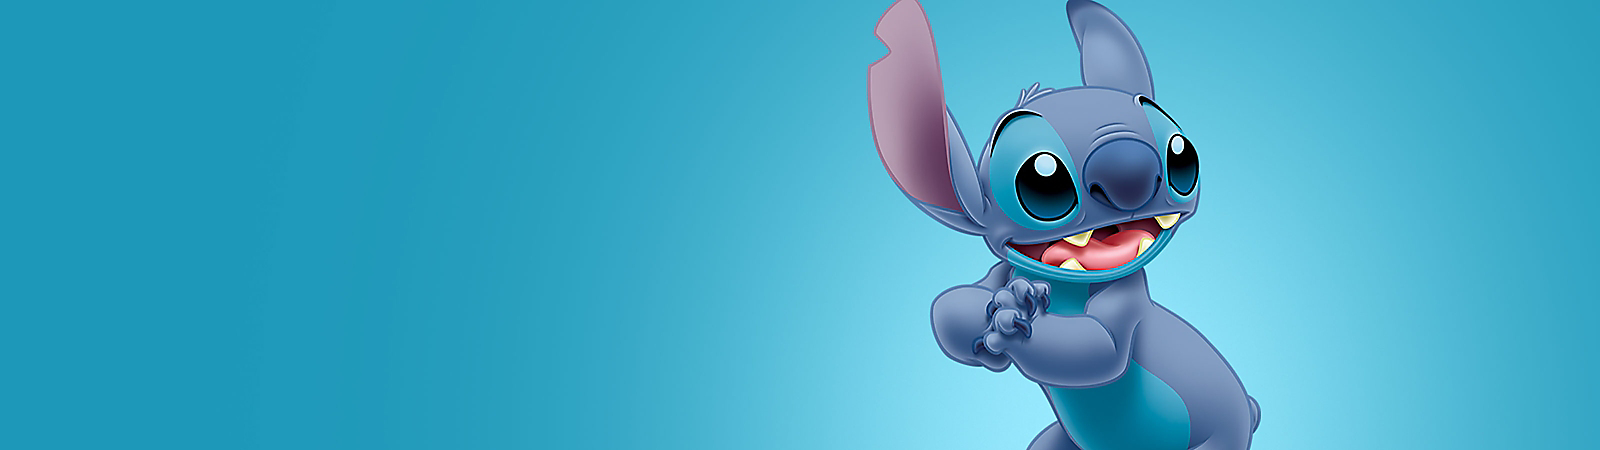 Background image of Stitch